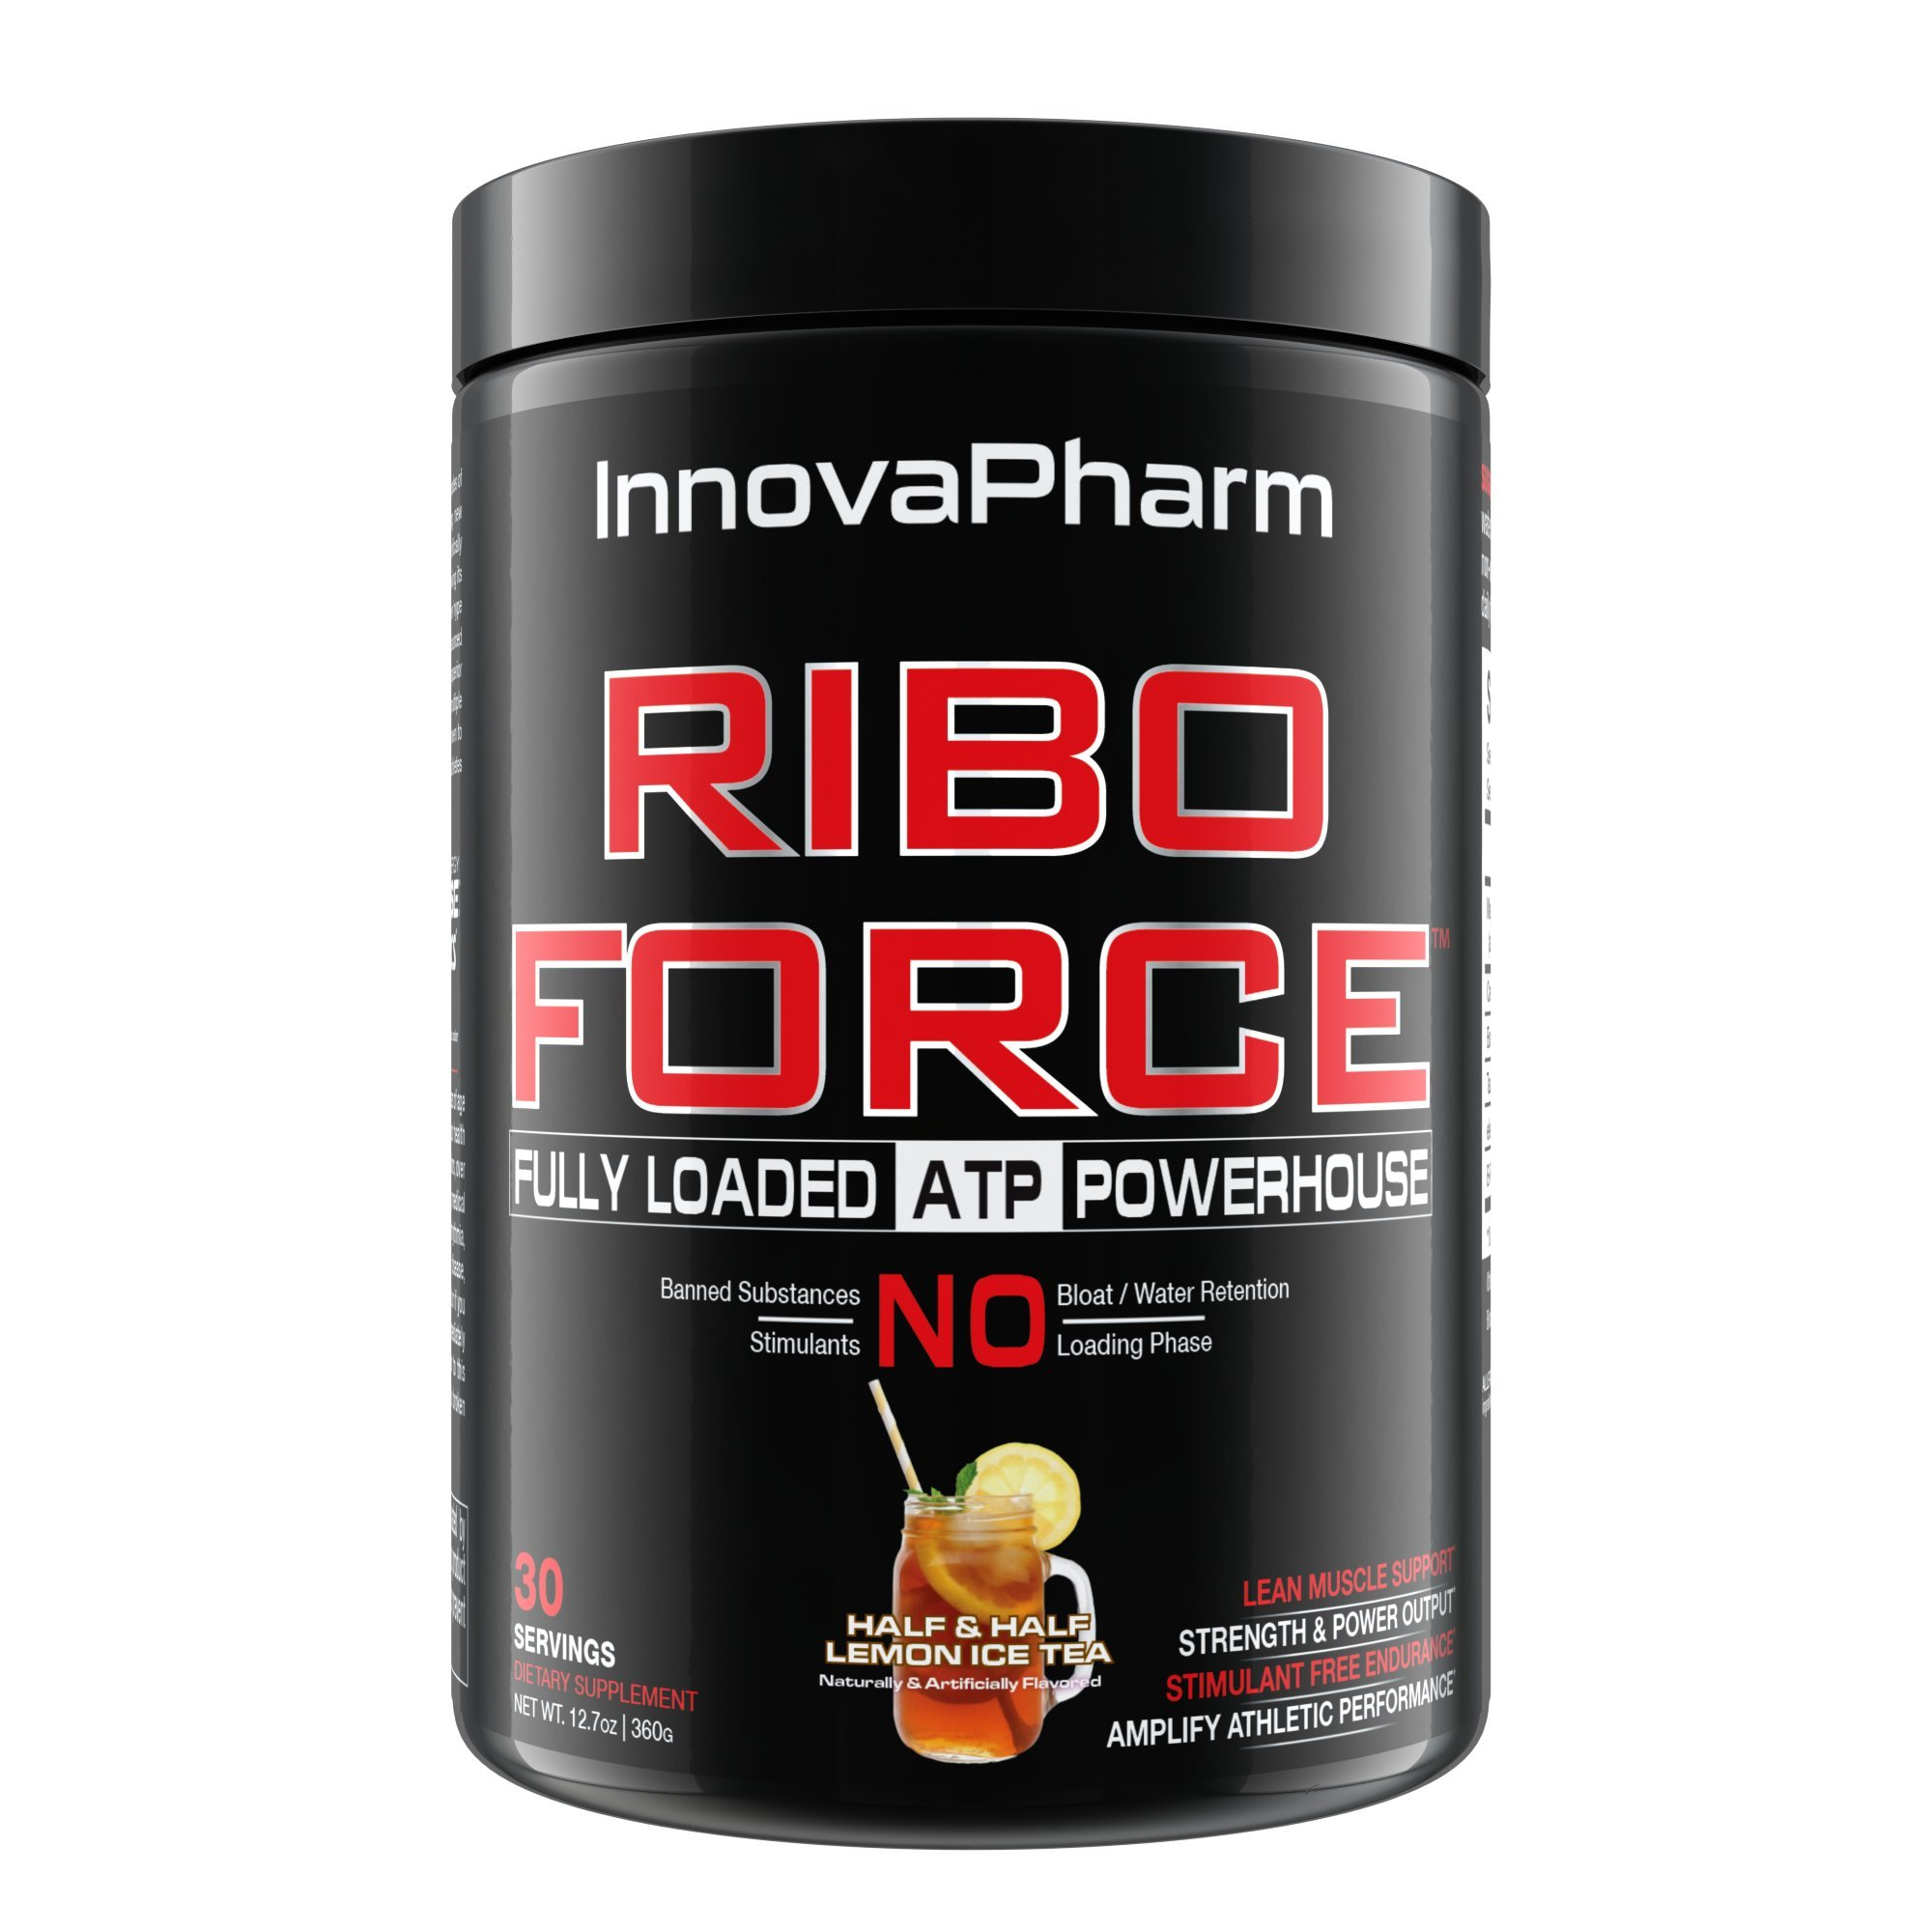 RiboForce - Half & Half Lemon Iced Tea - 30 Servings